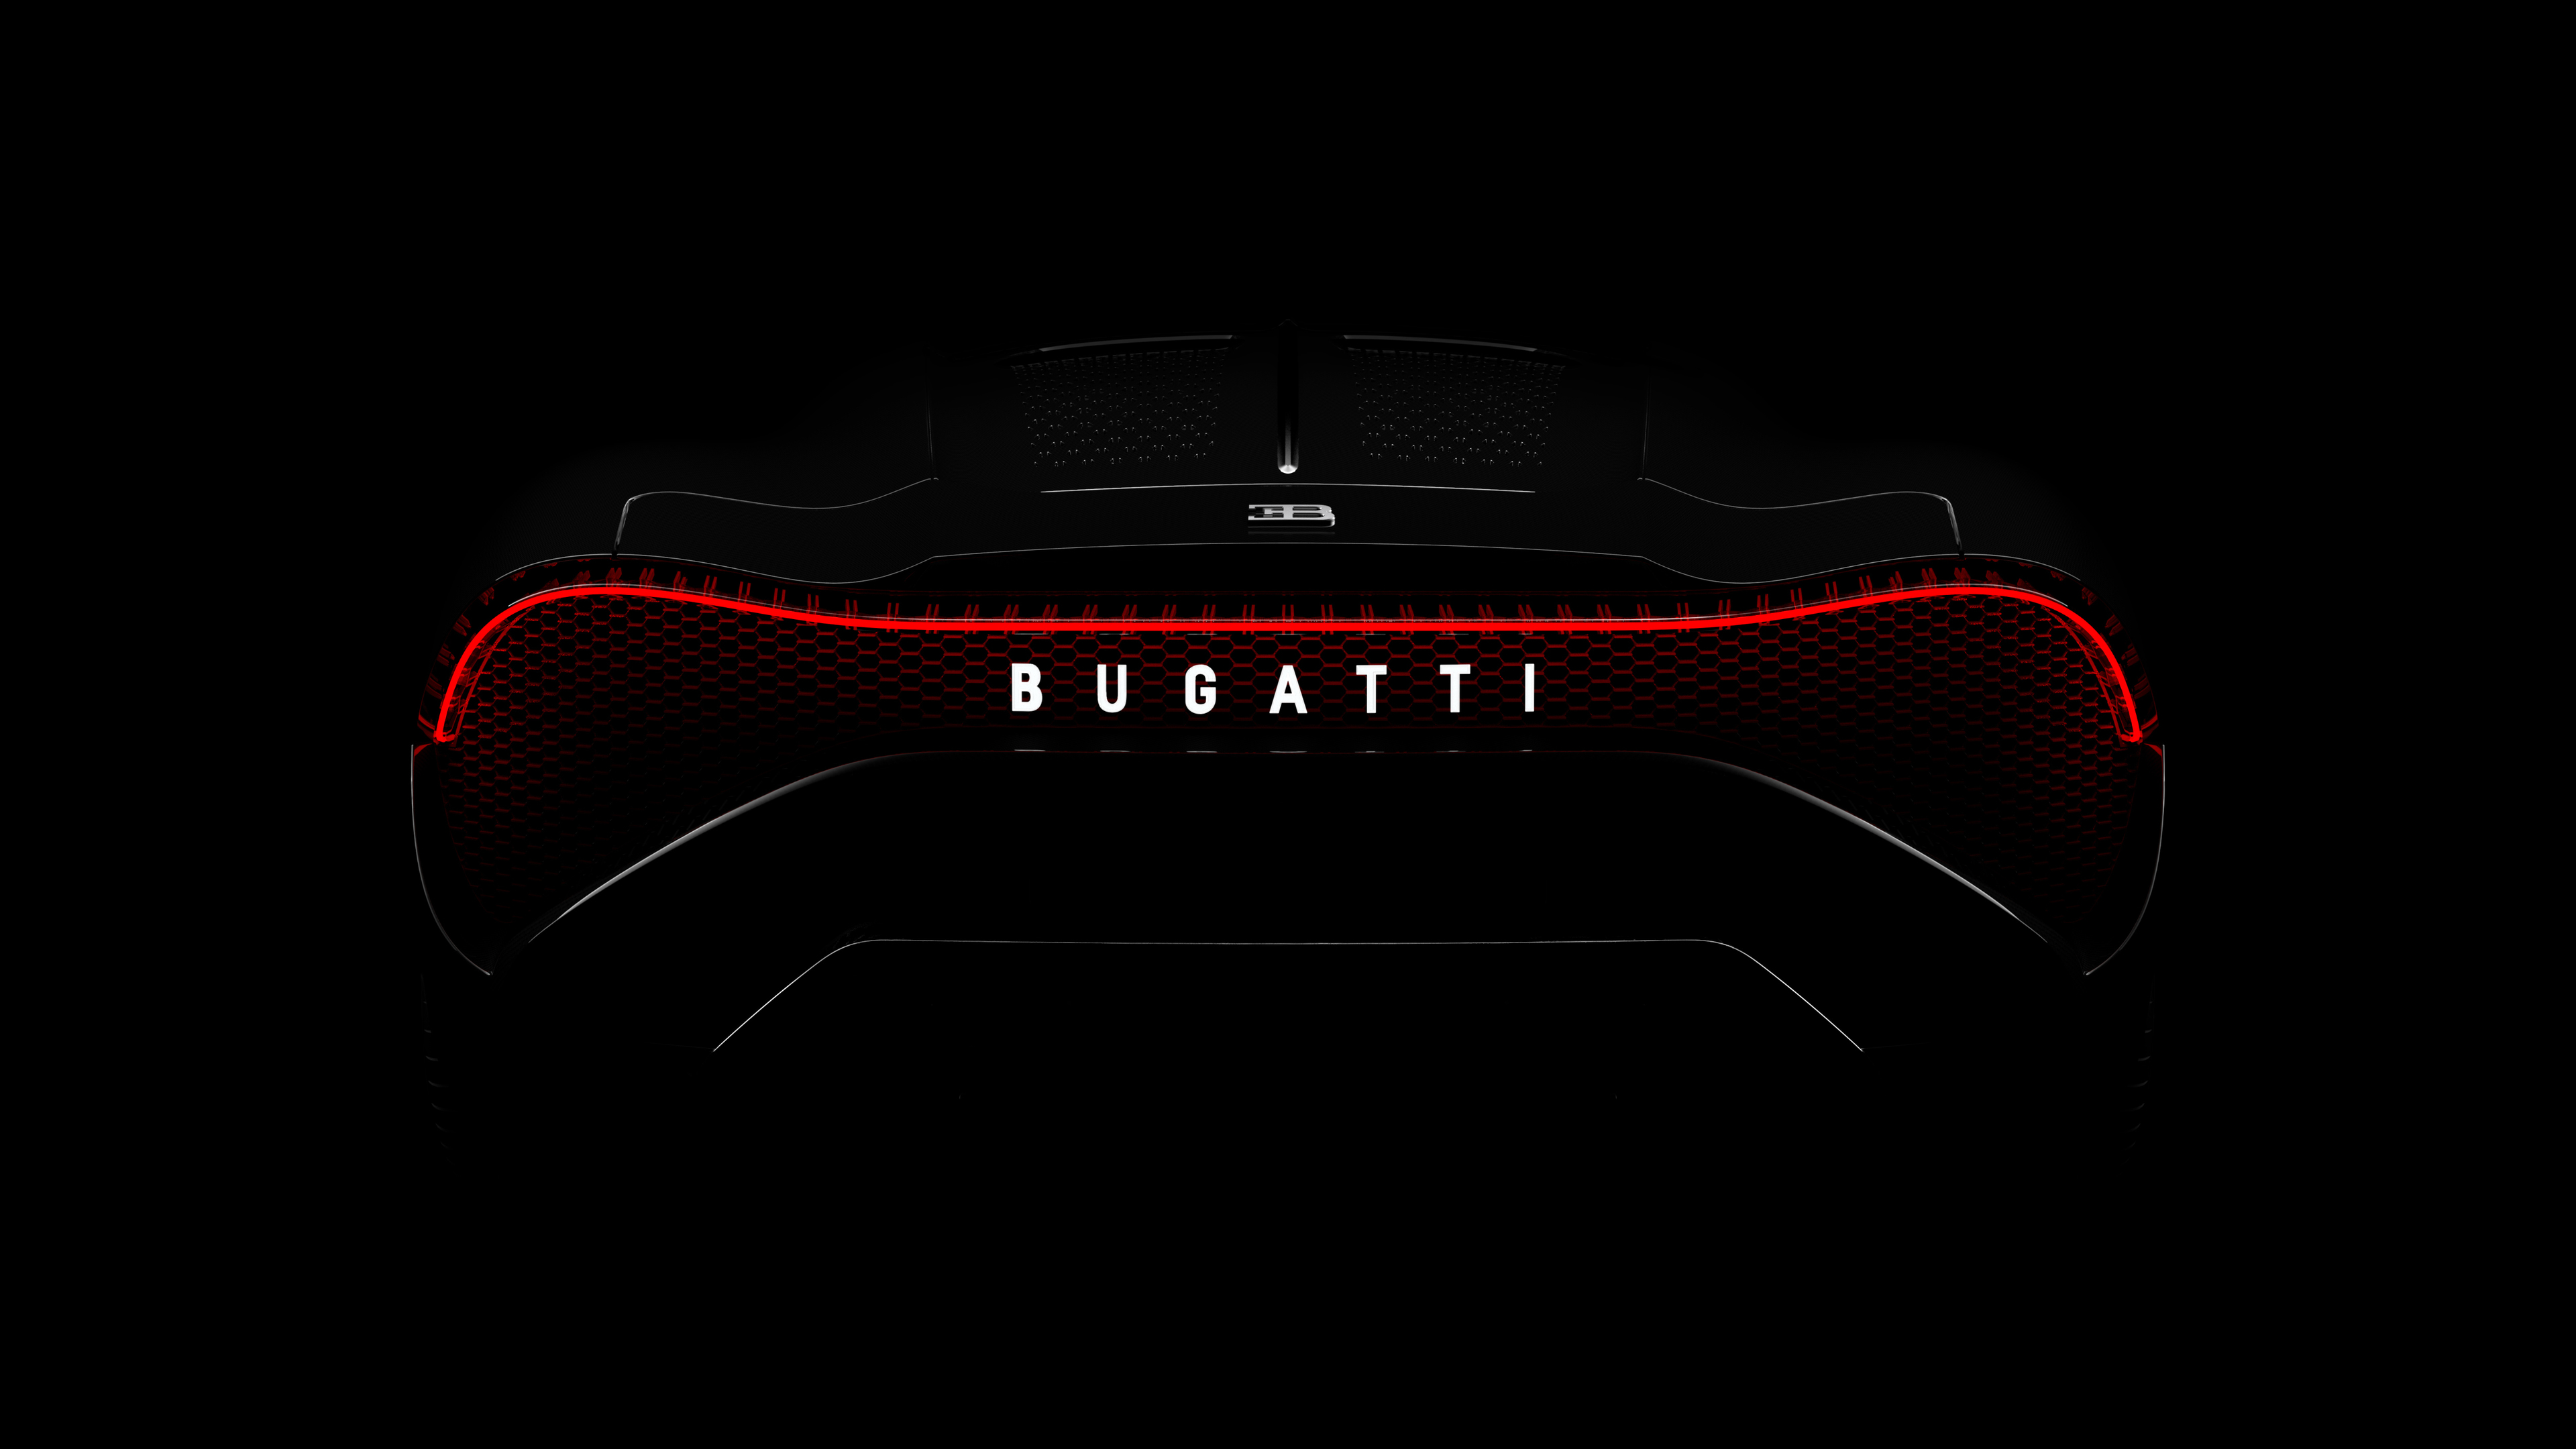 Wallpaper 4k Bugatti La Voiture Noire 2019 Rear Lights 4k